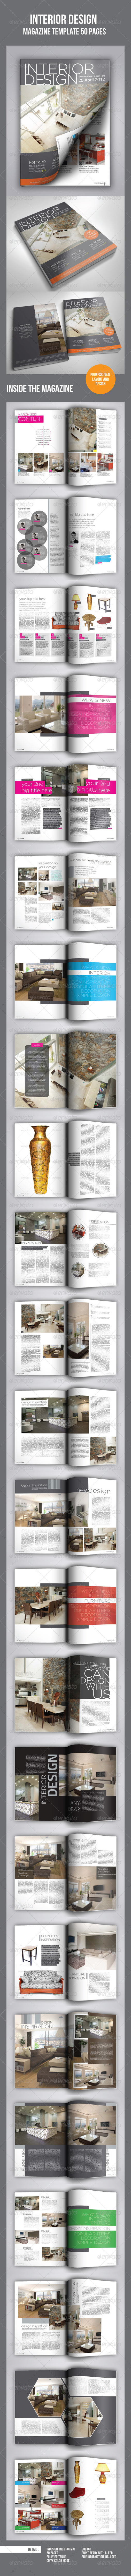 GraphicRiver Interior Design Magazine Template 50 pages 2860840